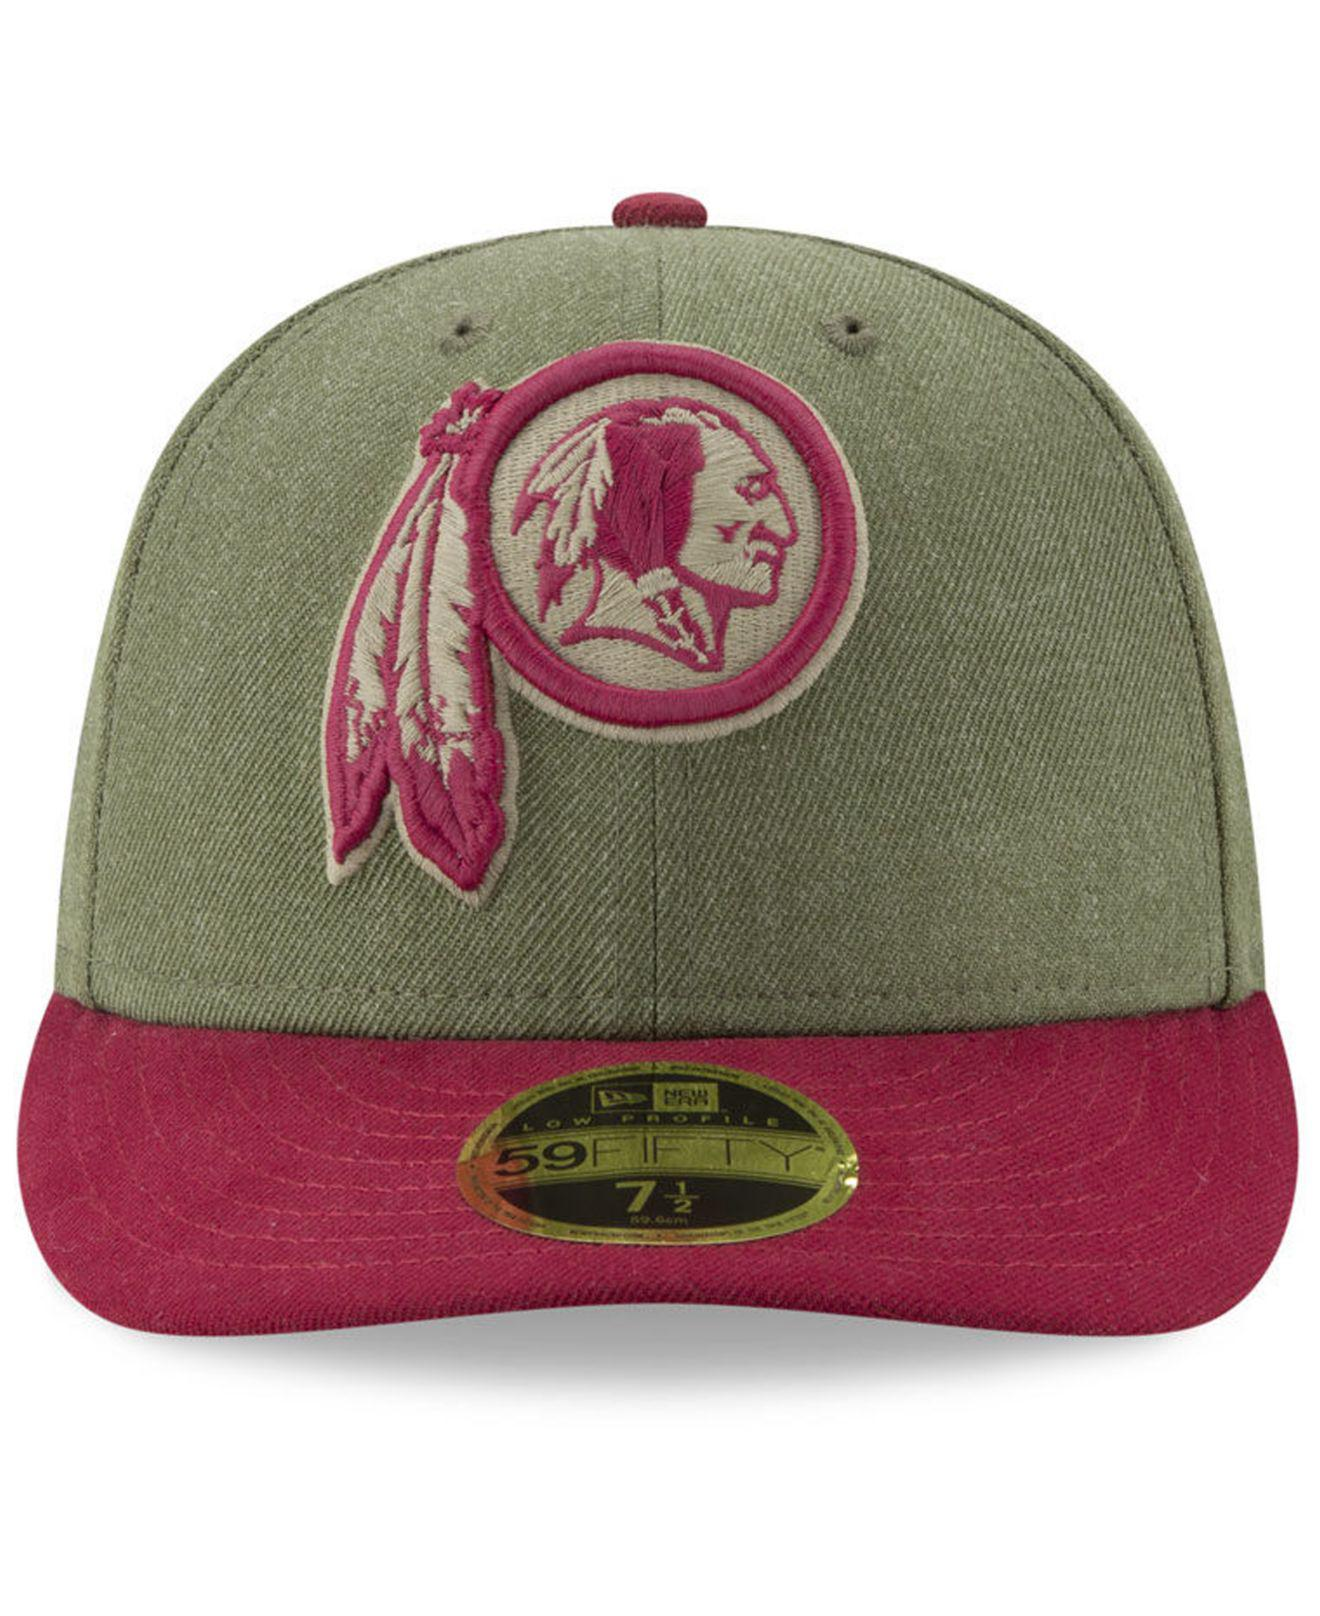 san francisco 4085a 4d848 Lyst - Ktz Washington Redskins Salute To Service Low Profile 59fifty Fitted  Cap 2018 in Green for Men